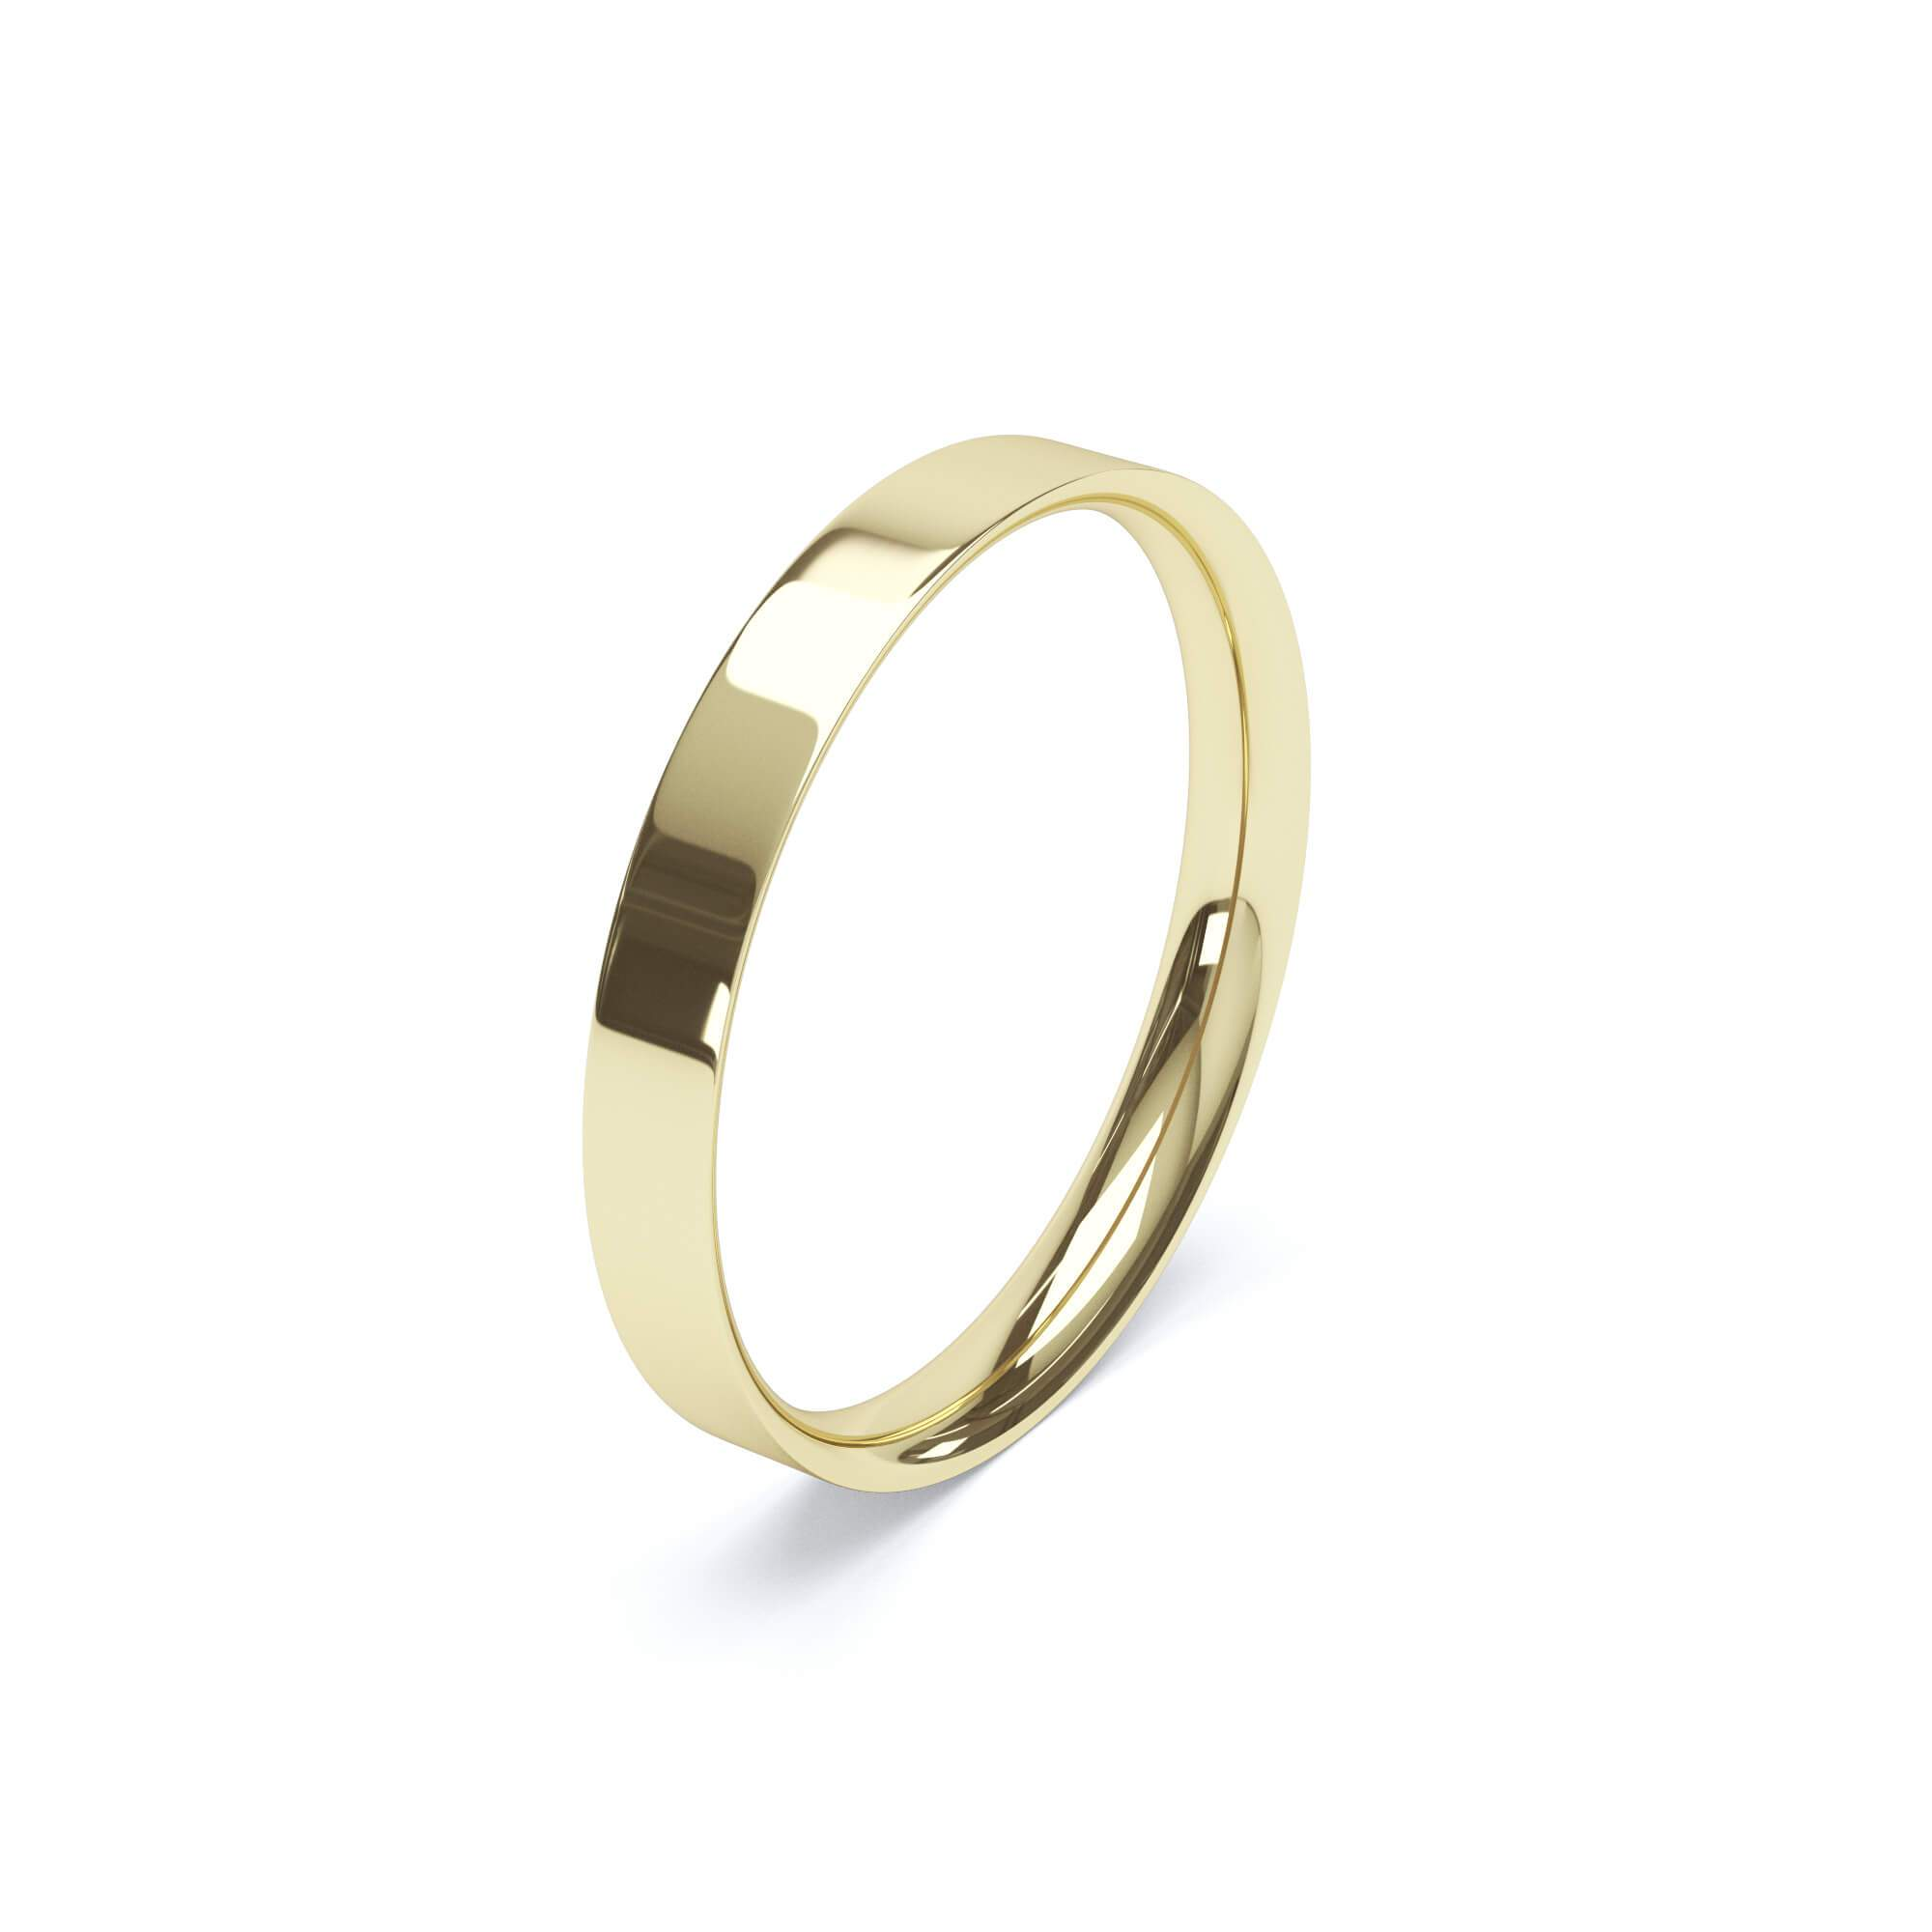 Lily Arkwright Wedding Bands Women's of Plain Wedding Band Flat Court Profile 18k Yellow Gold